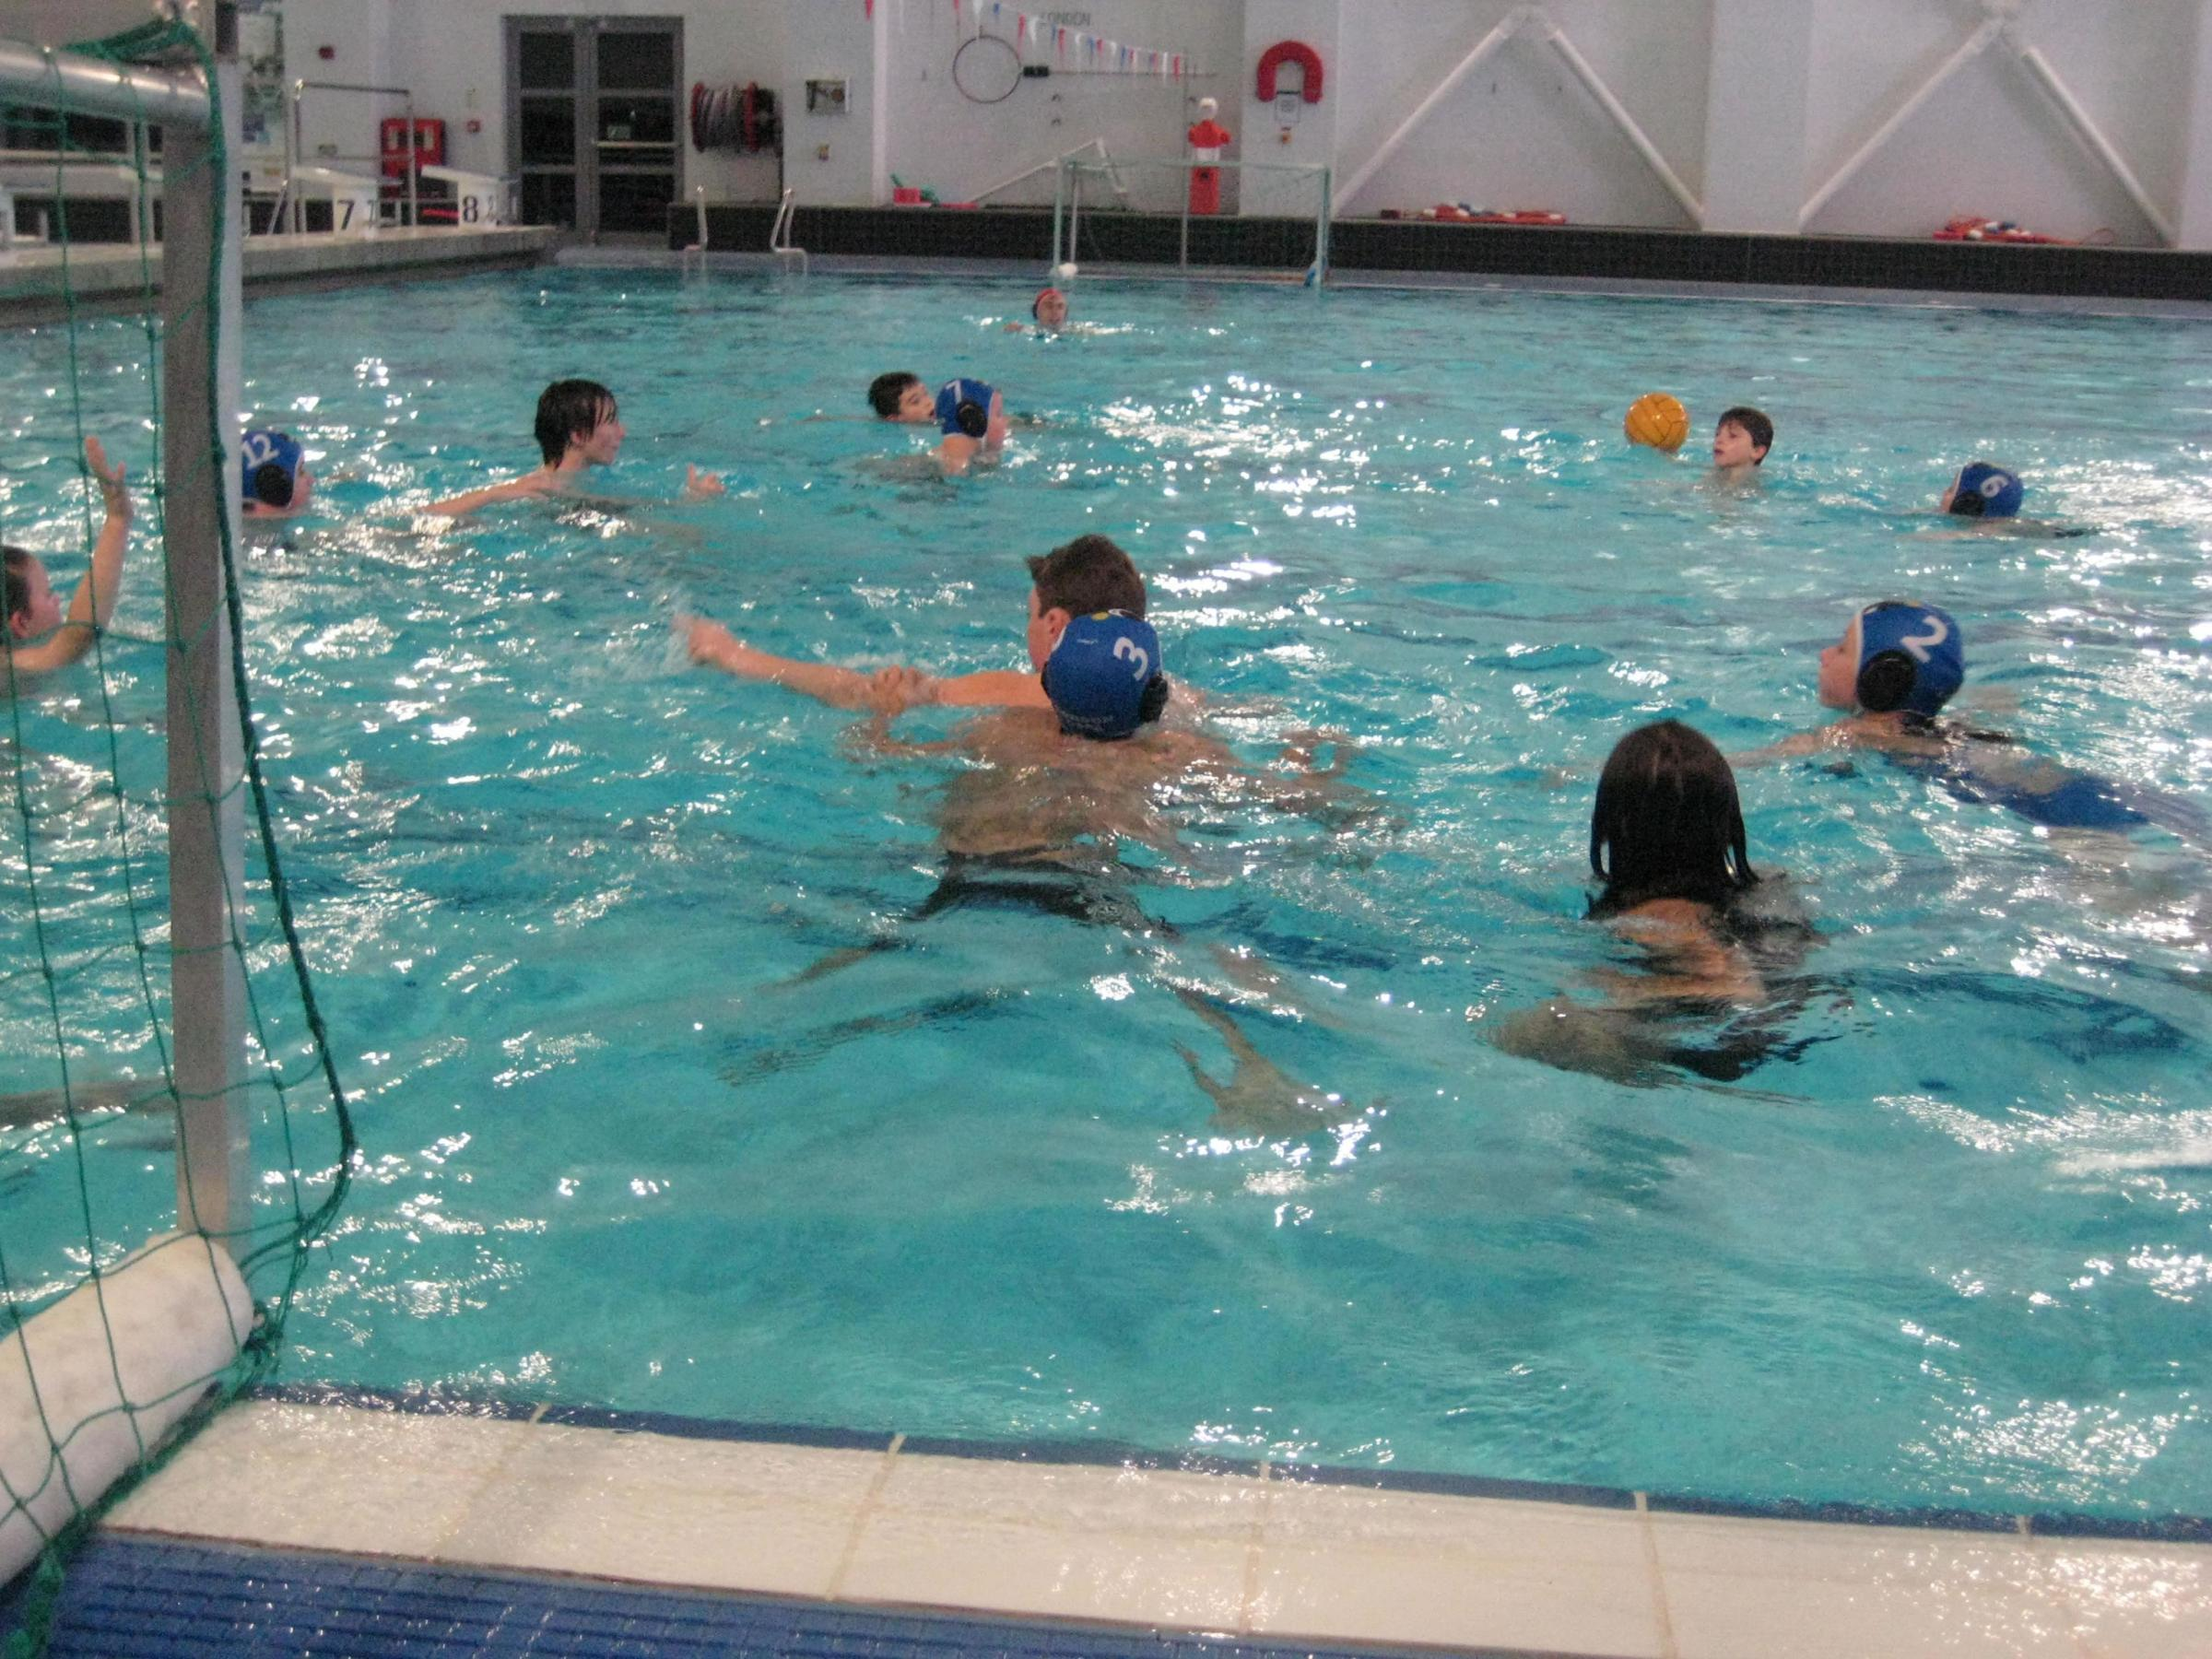 Junior Water Polo at Uxbridge Pool